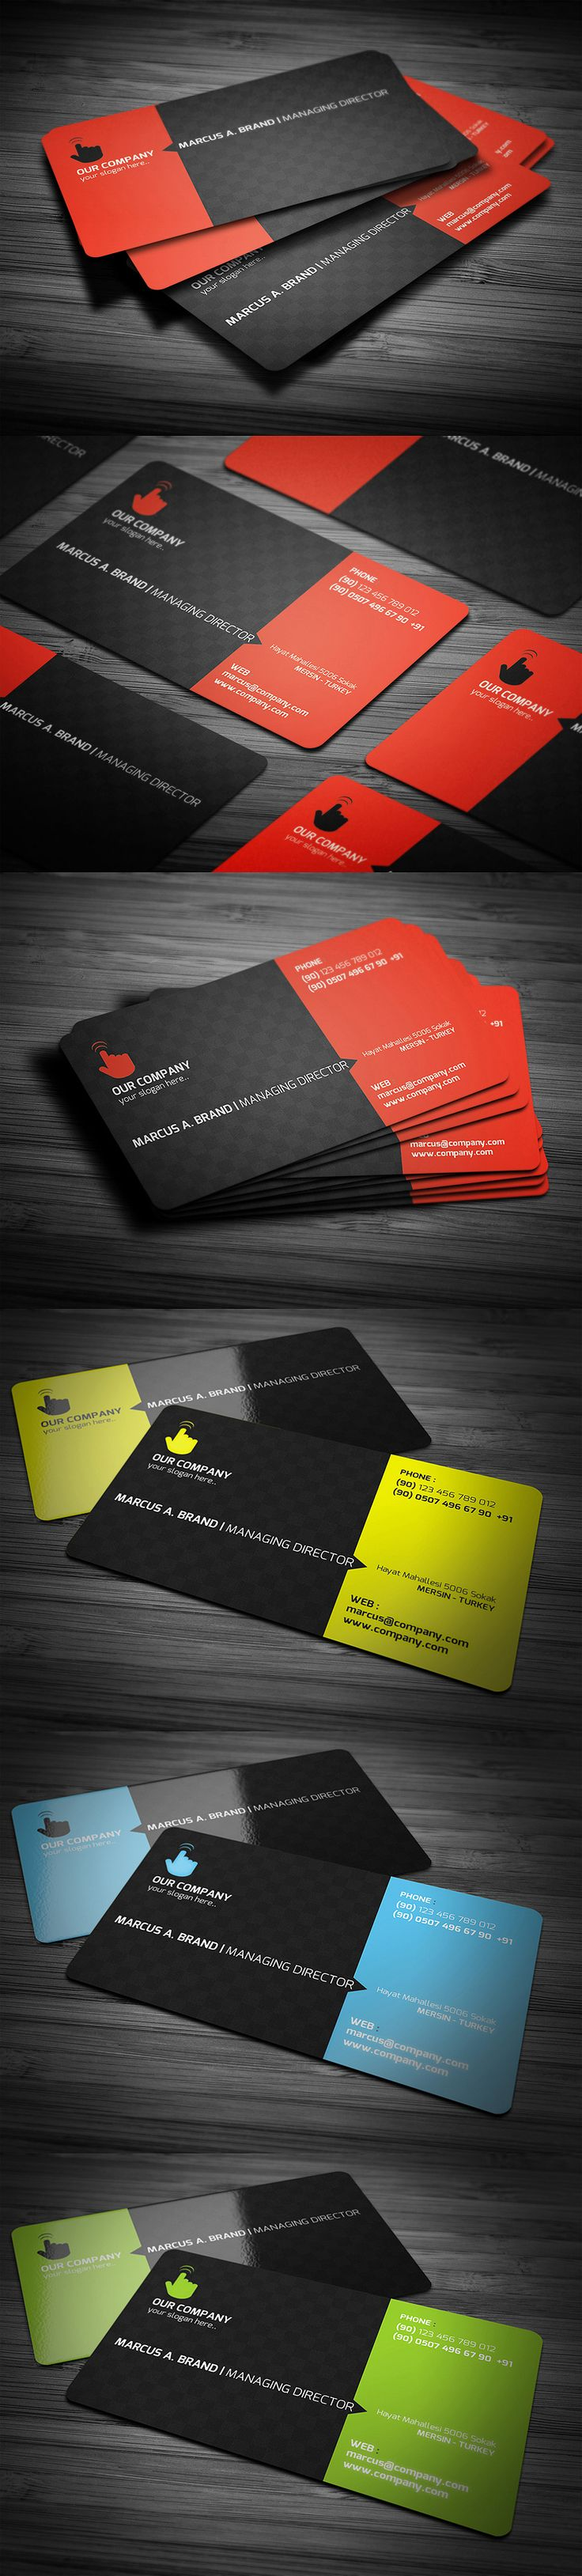 Graphic Design Business Ideas 25 part time business ideas entrepreneurcom Want To Learn How To Create Amazing Business Cards Download For Free The Complete